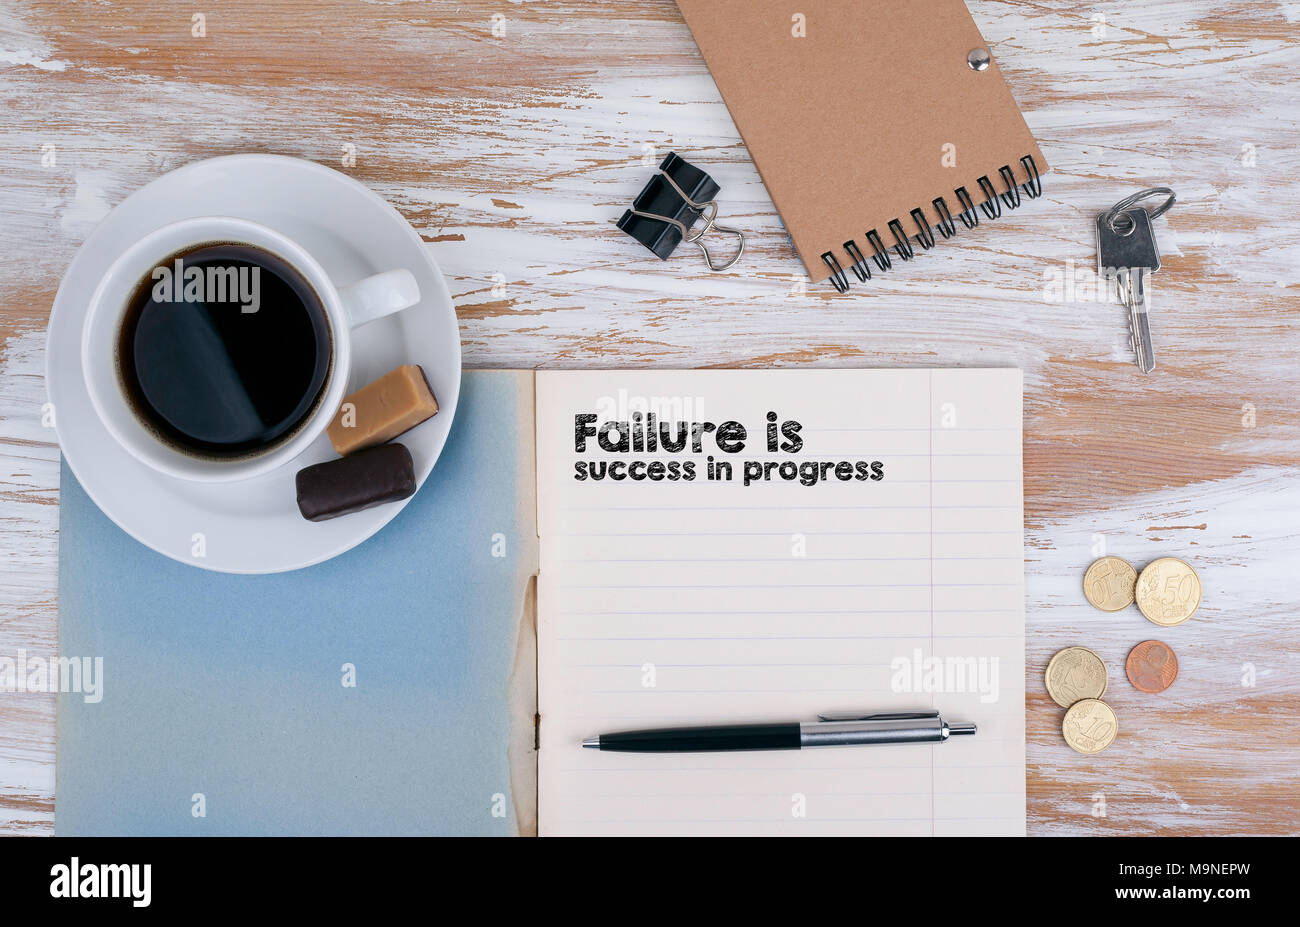 Failure is success in progress - Stock Image